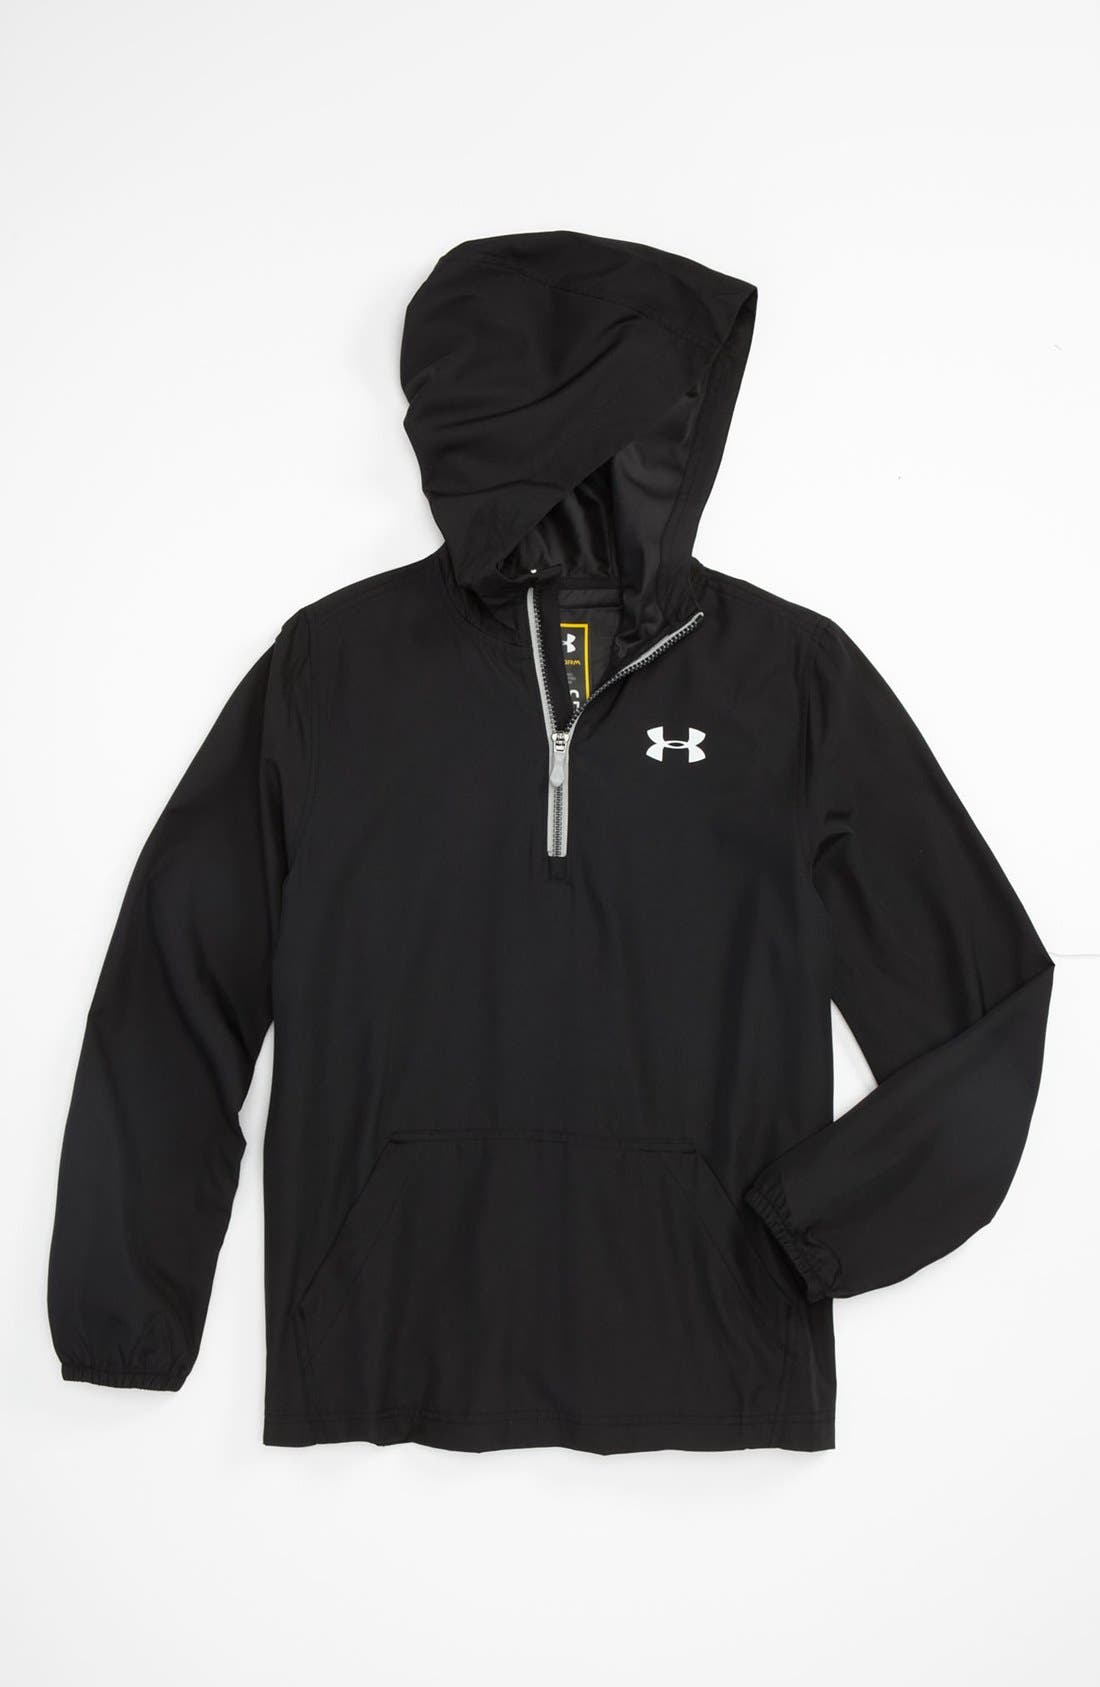 Alternate Image 1 Selected - Under Armour 'Droplets' Hoodie (Big Boys)